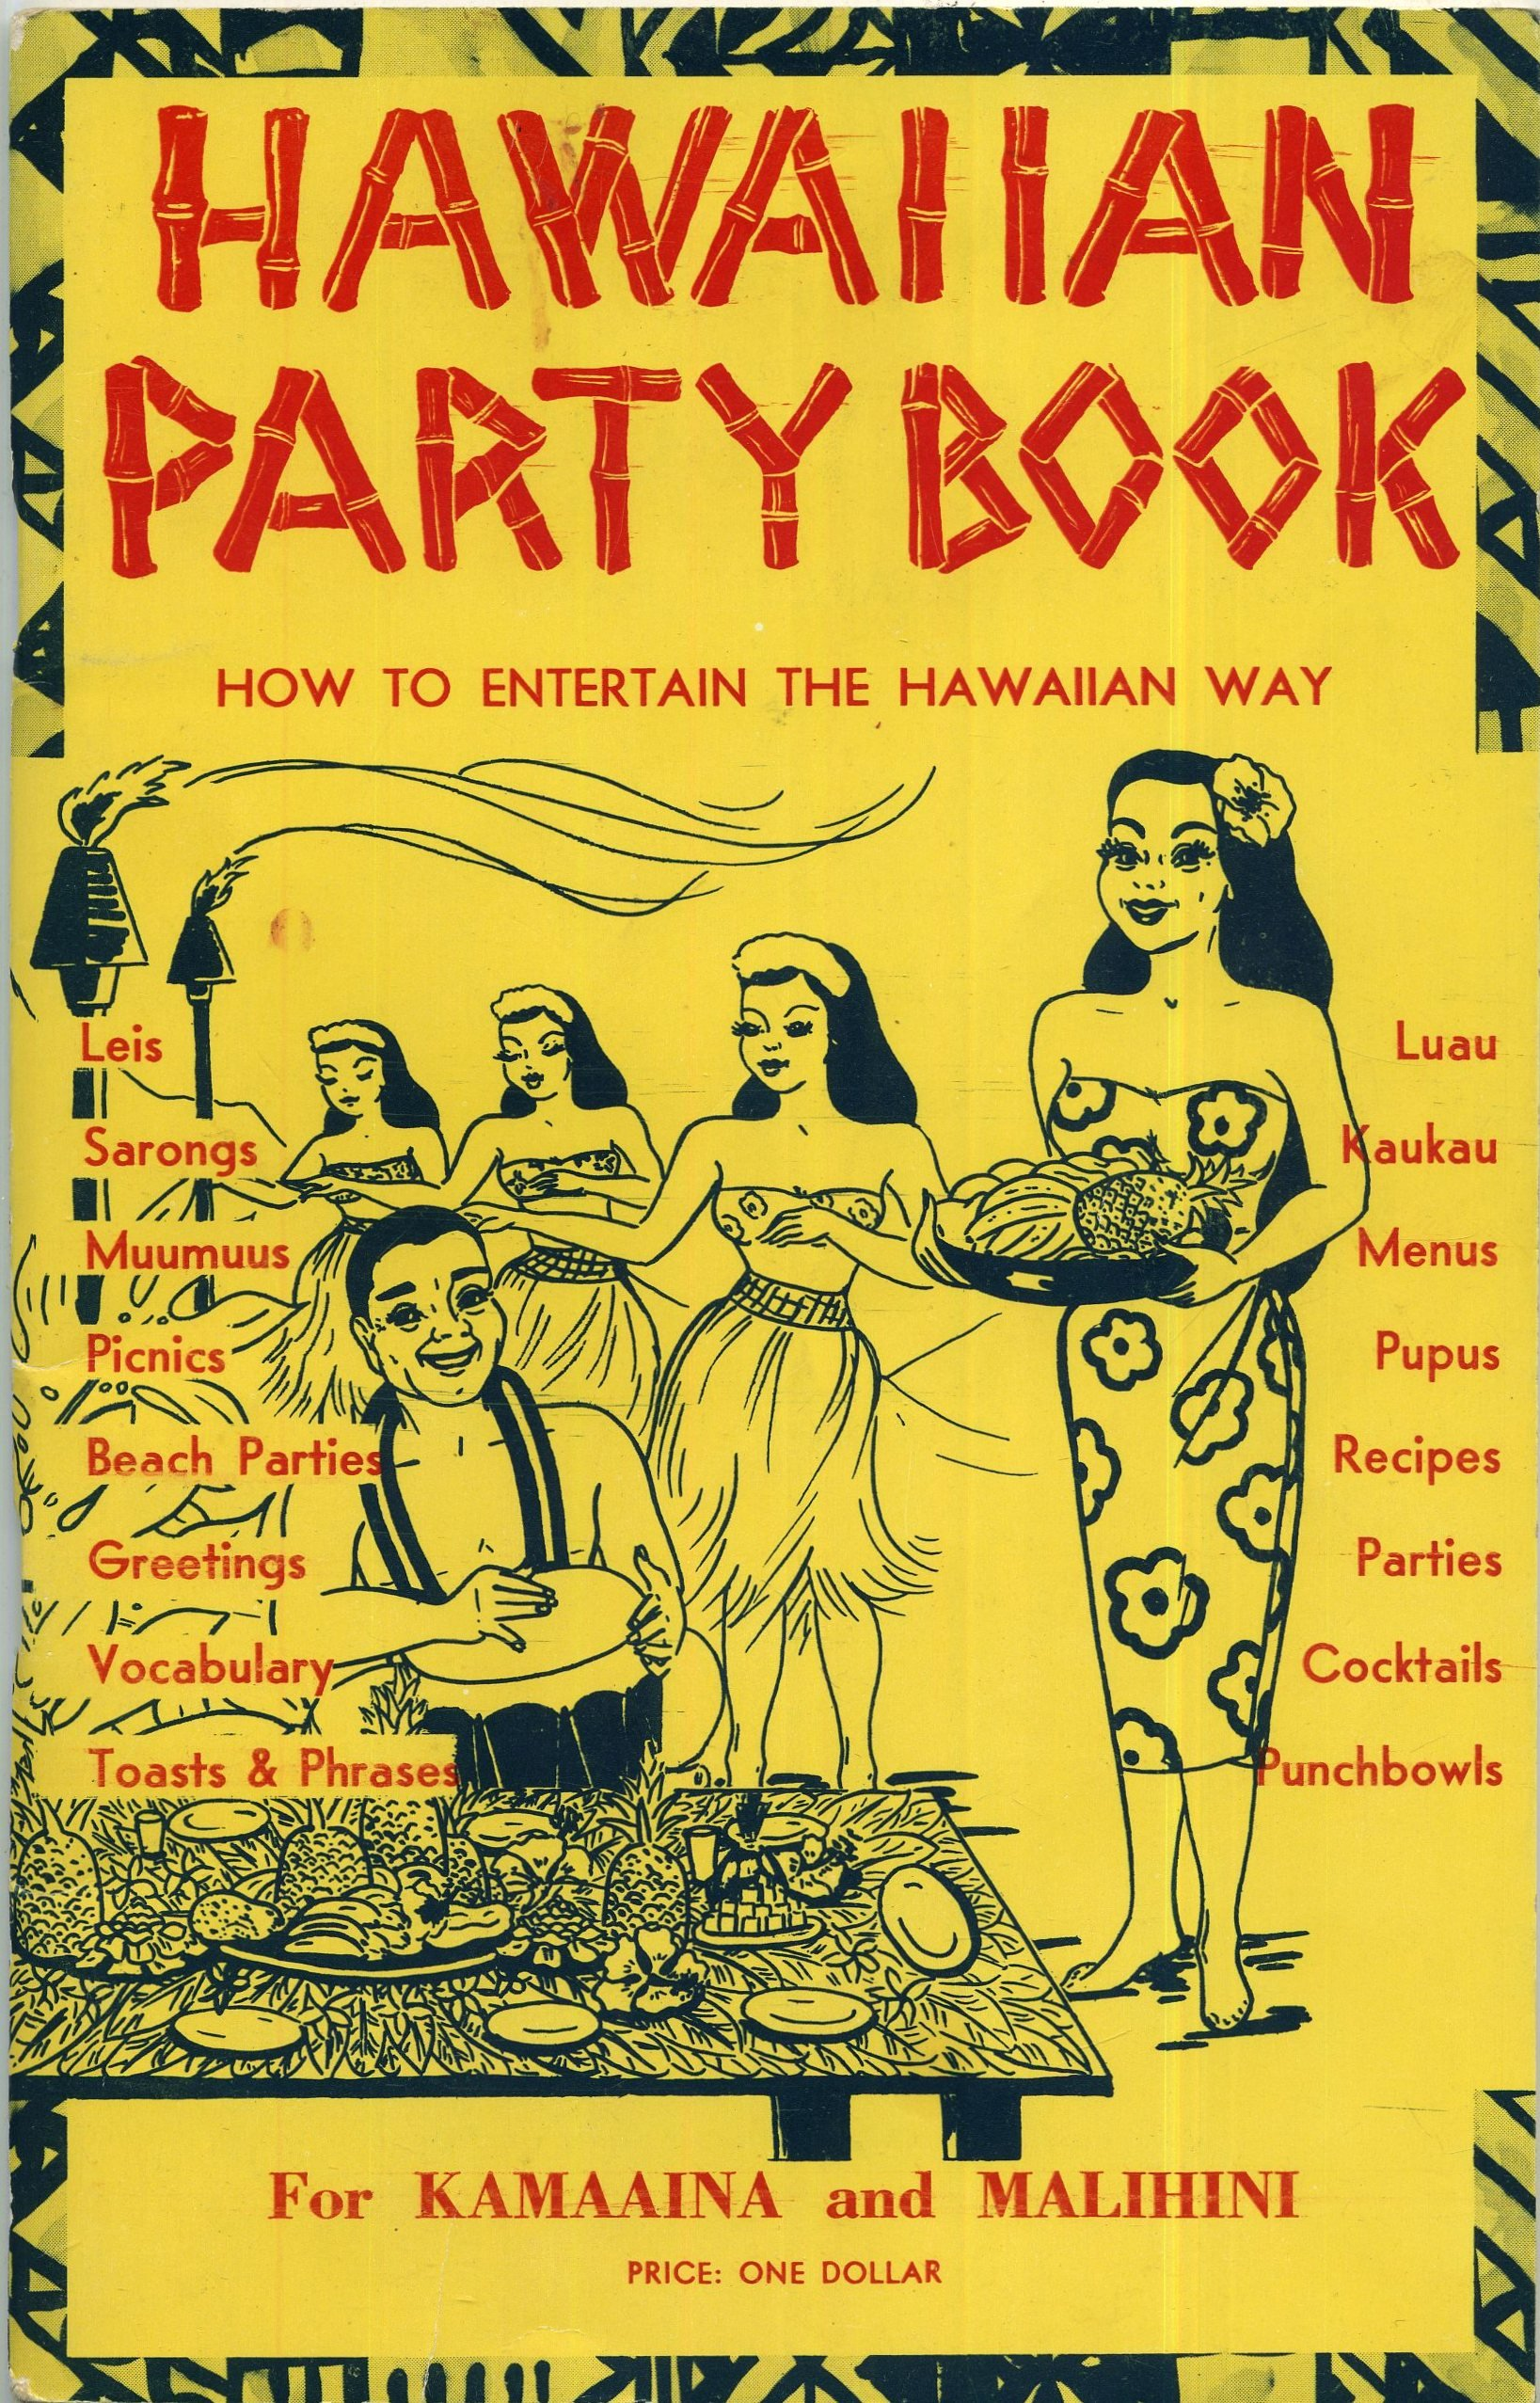 Hawaiian party book how to entertain the hawaiian way scotty guletz hawaiian party book how to entertain the hawaiian way scotty guletz amazon books m4hsunfo